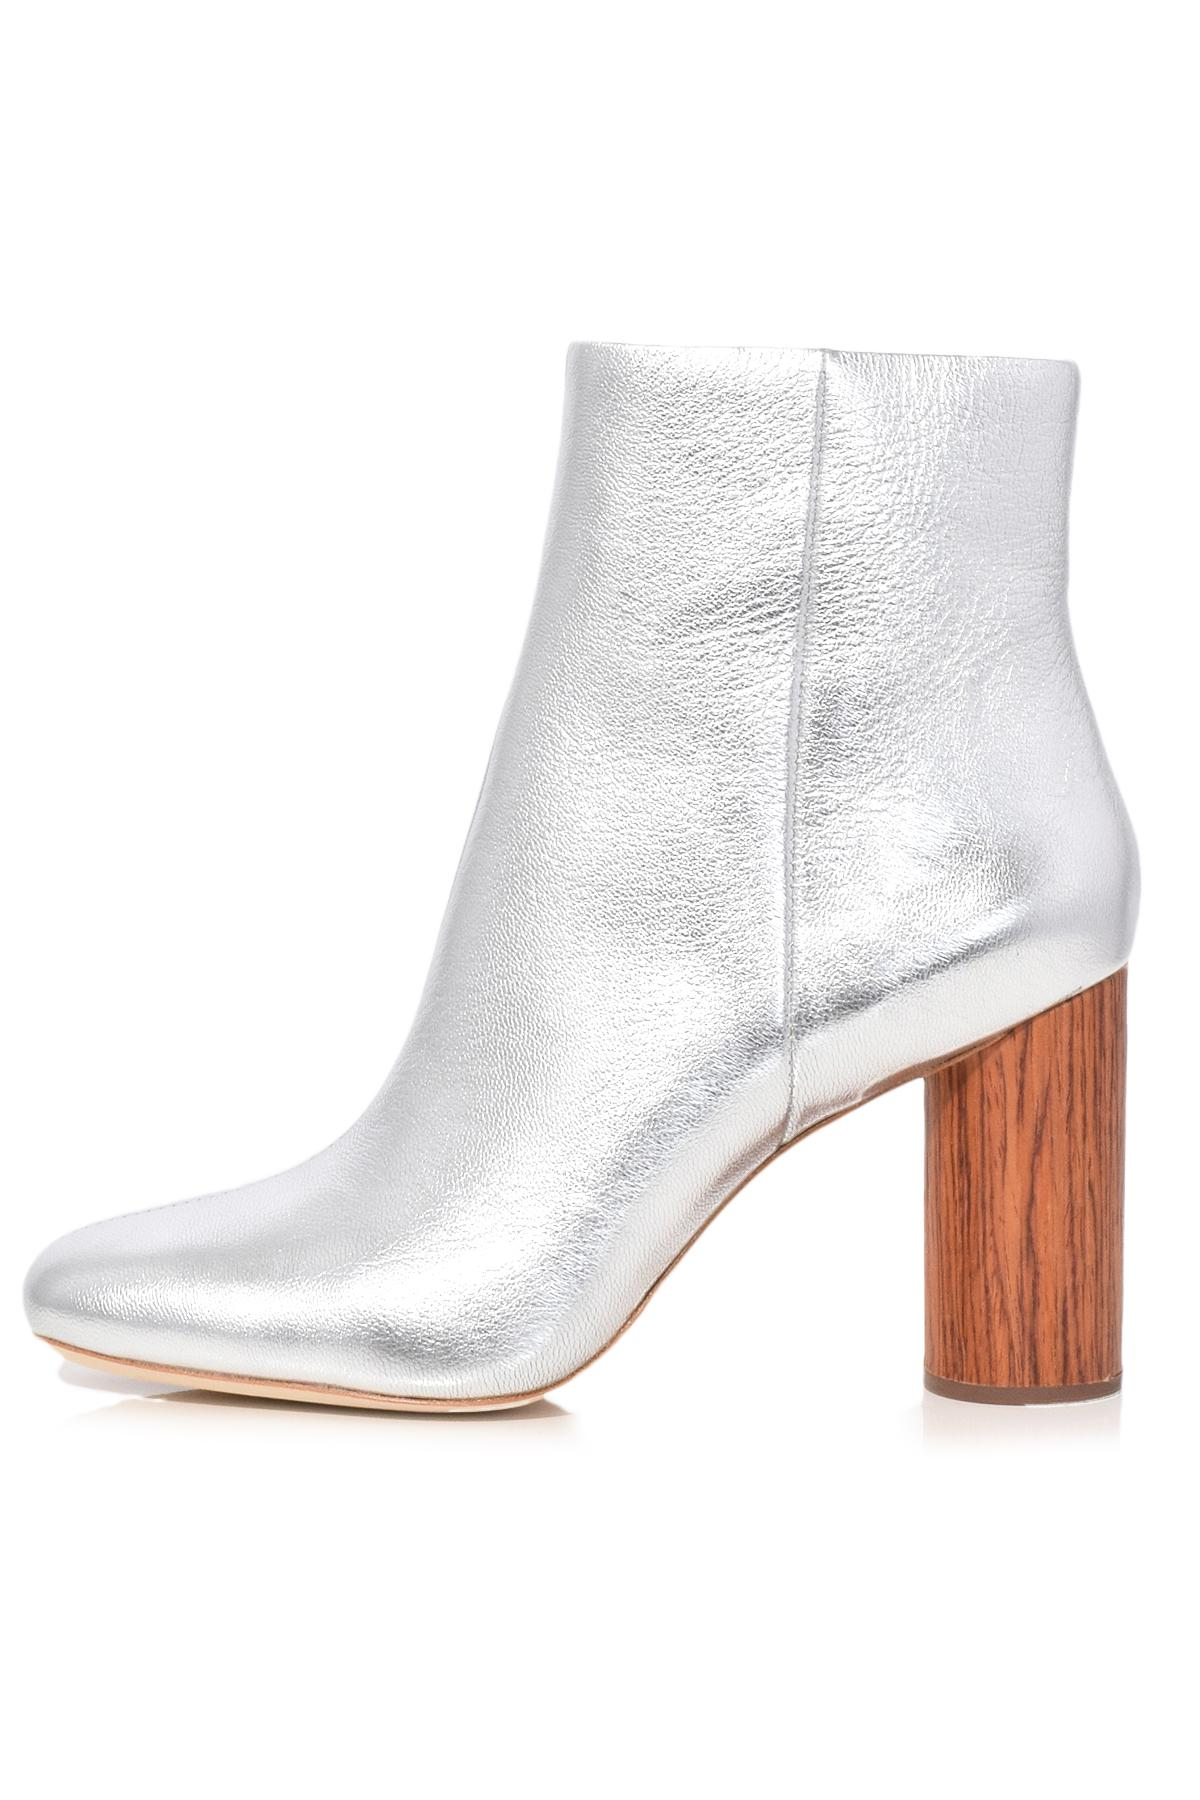 Loeffler Randall Metallic Wedged Boots 100% authentic for sale purchase WjanwFLB